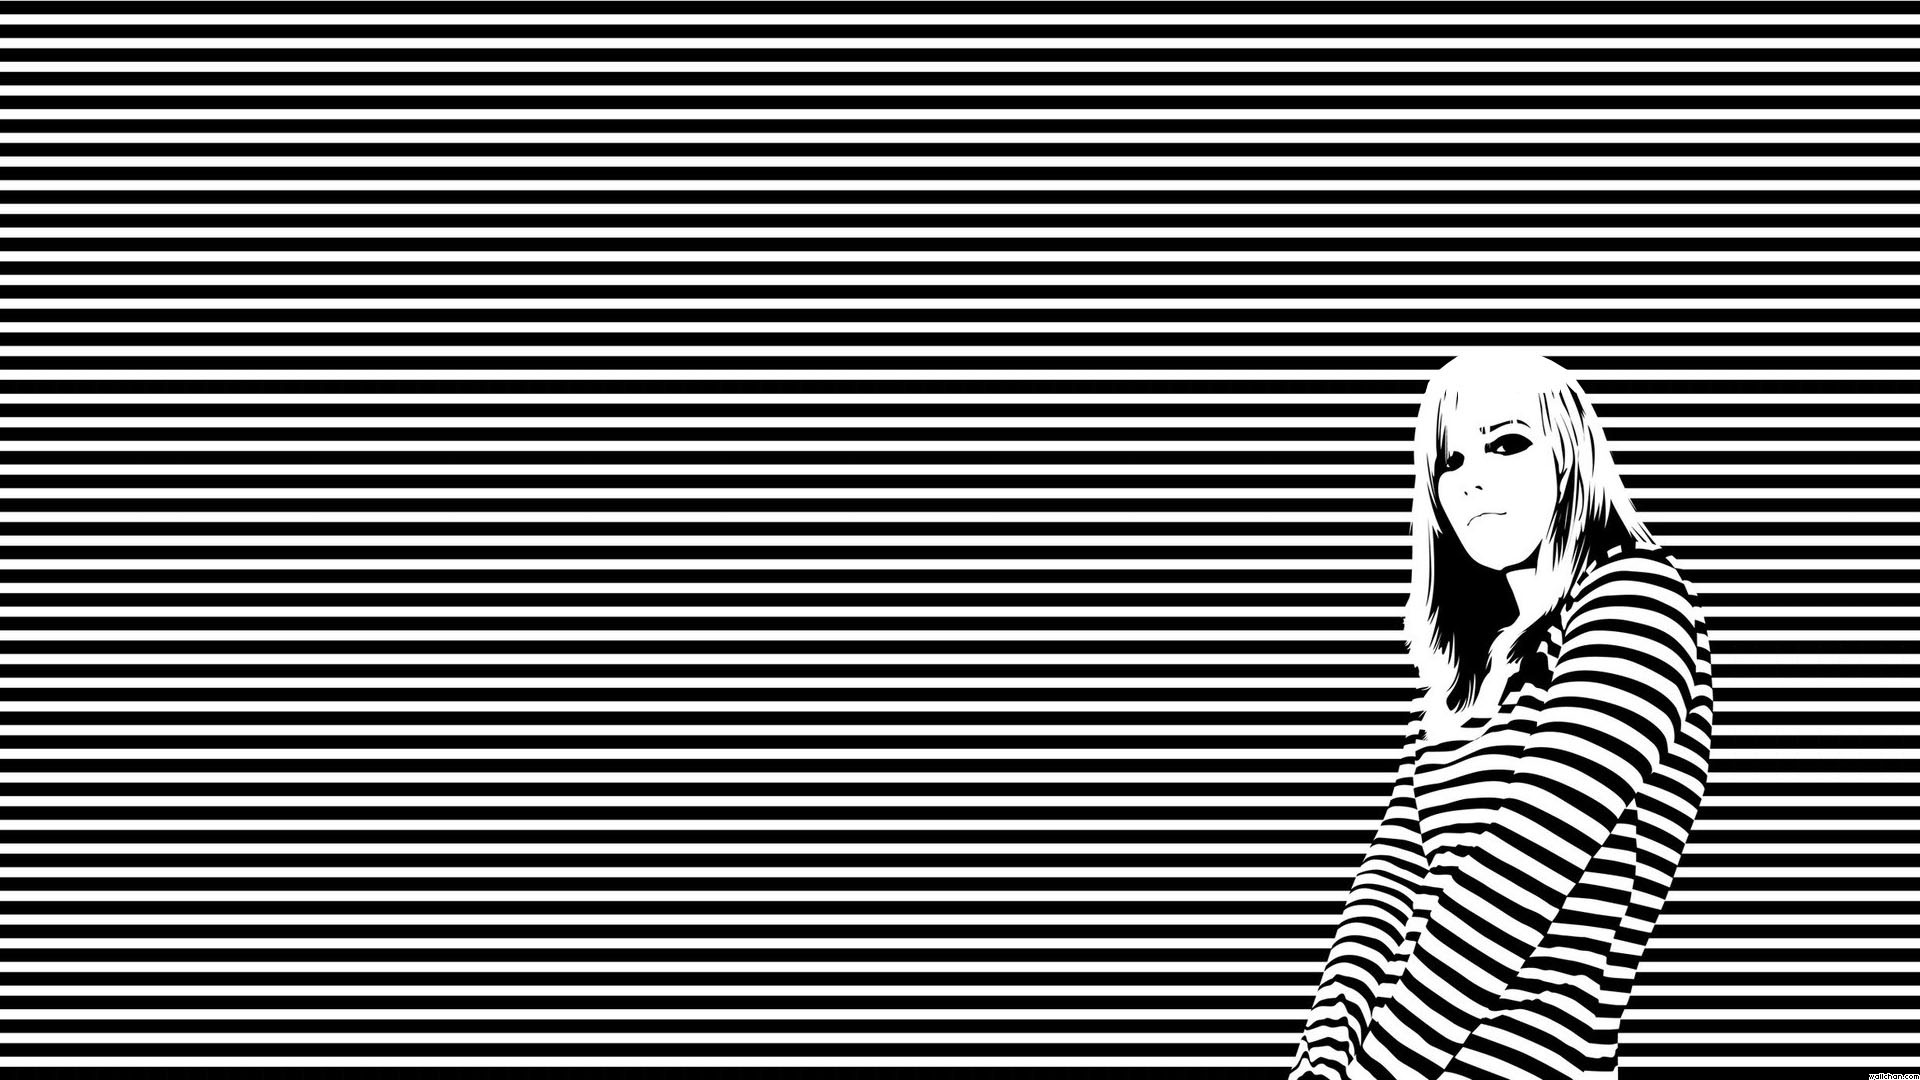 Black and white wallpaper download free stunning hd - White background 1920x1080 ...